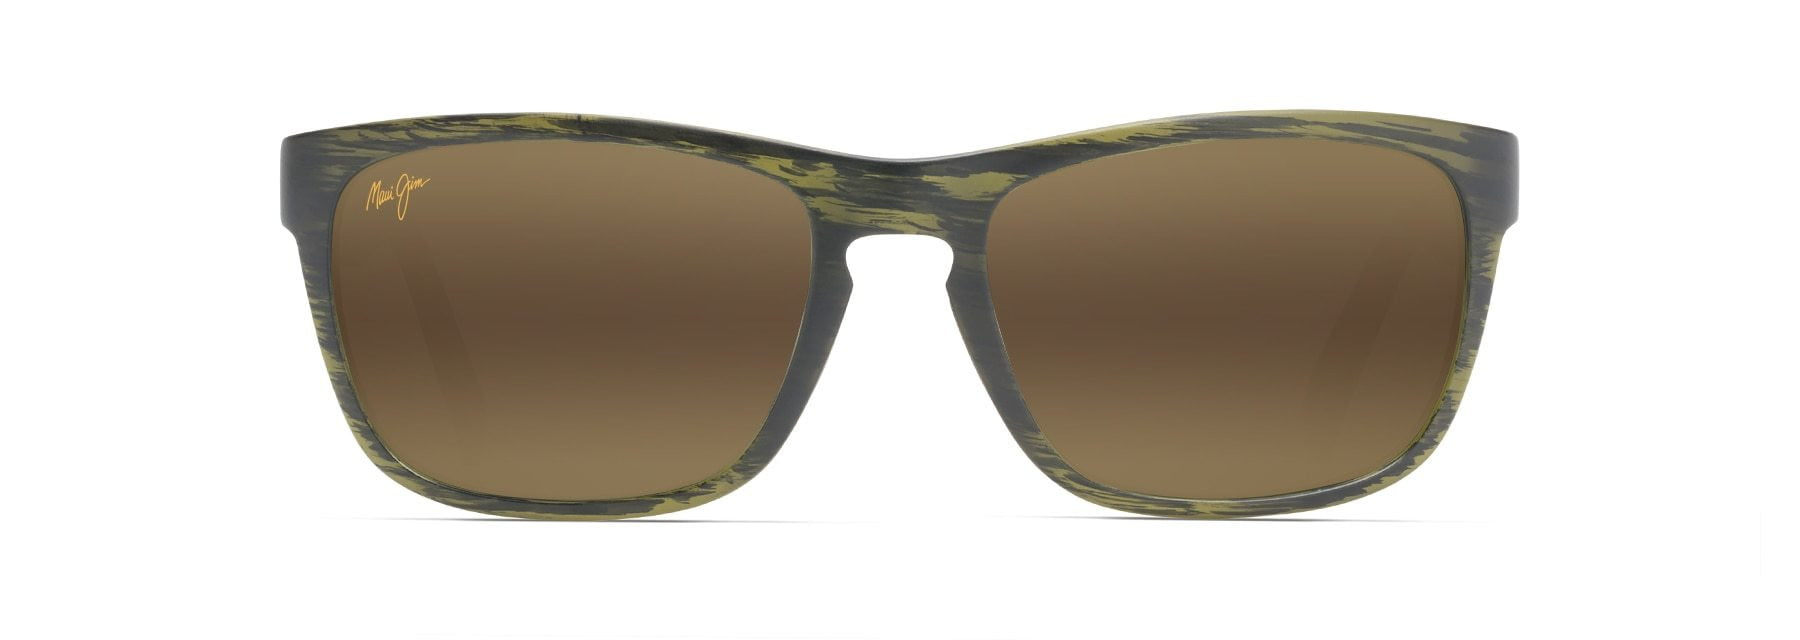 MyMaui South Swell MM755-010 Sunglasses